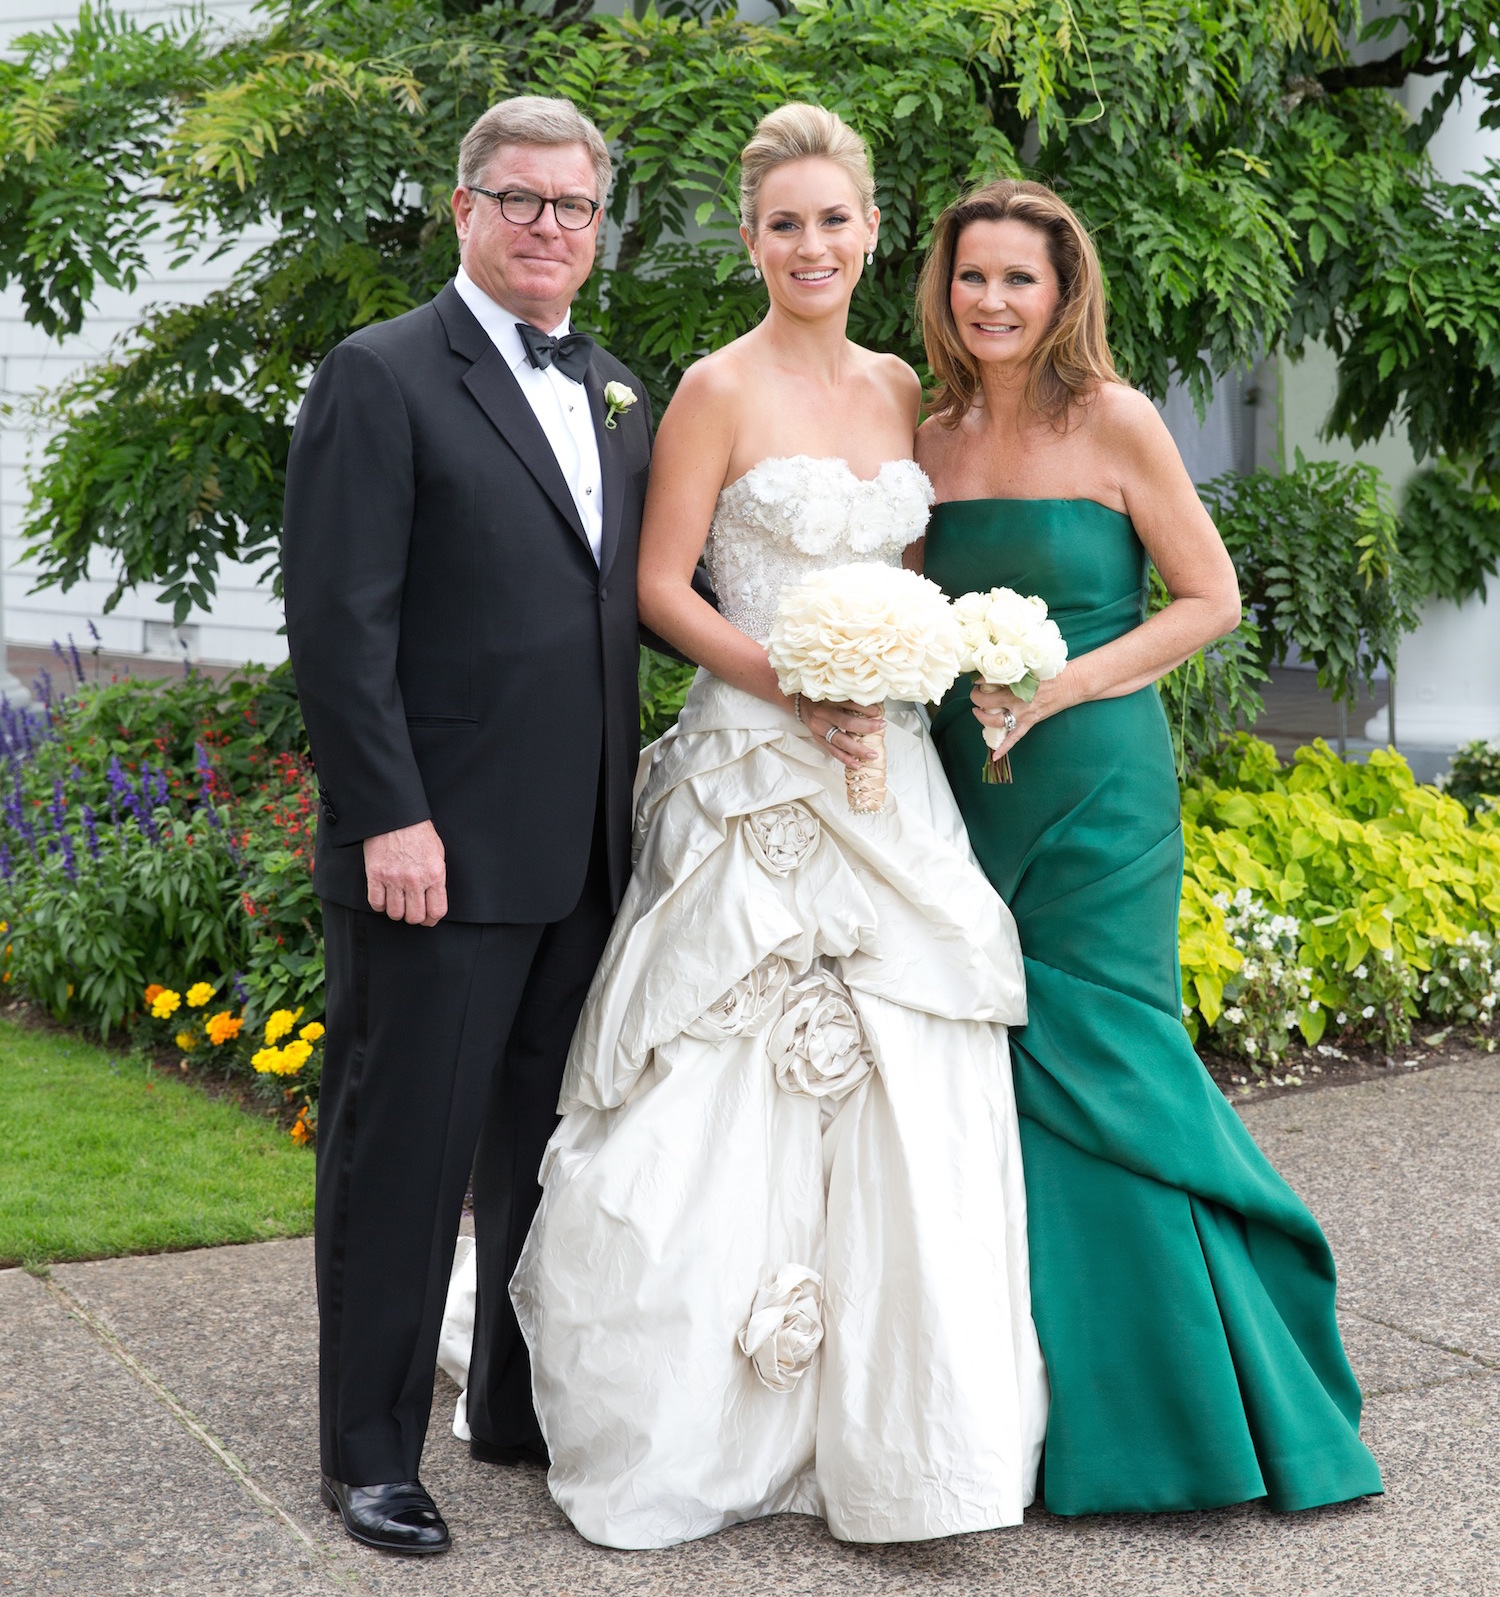 Strapless mother of the bride dress in dark forest green mermaid gown